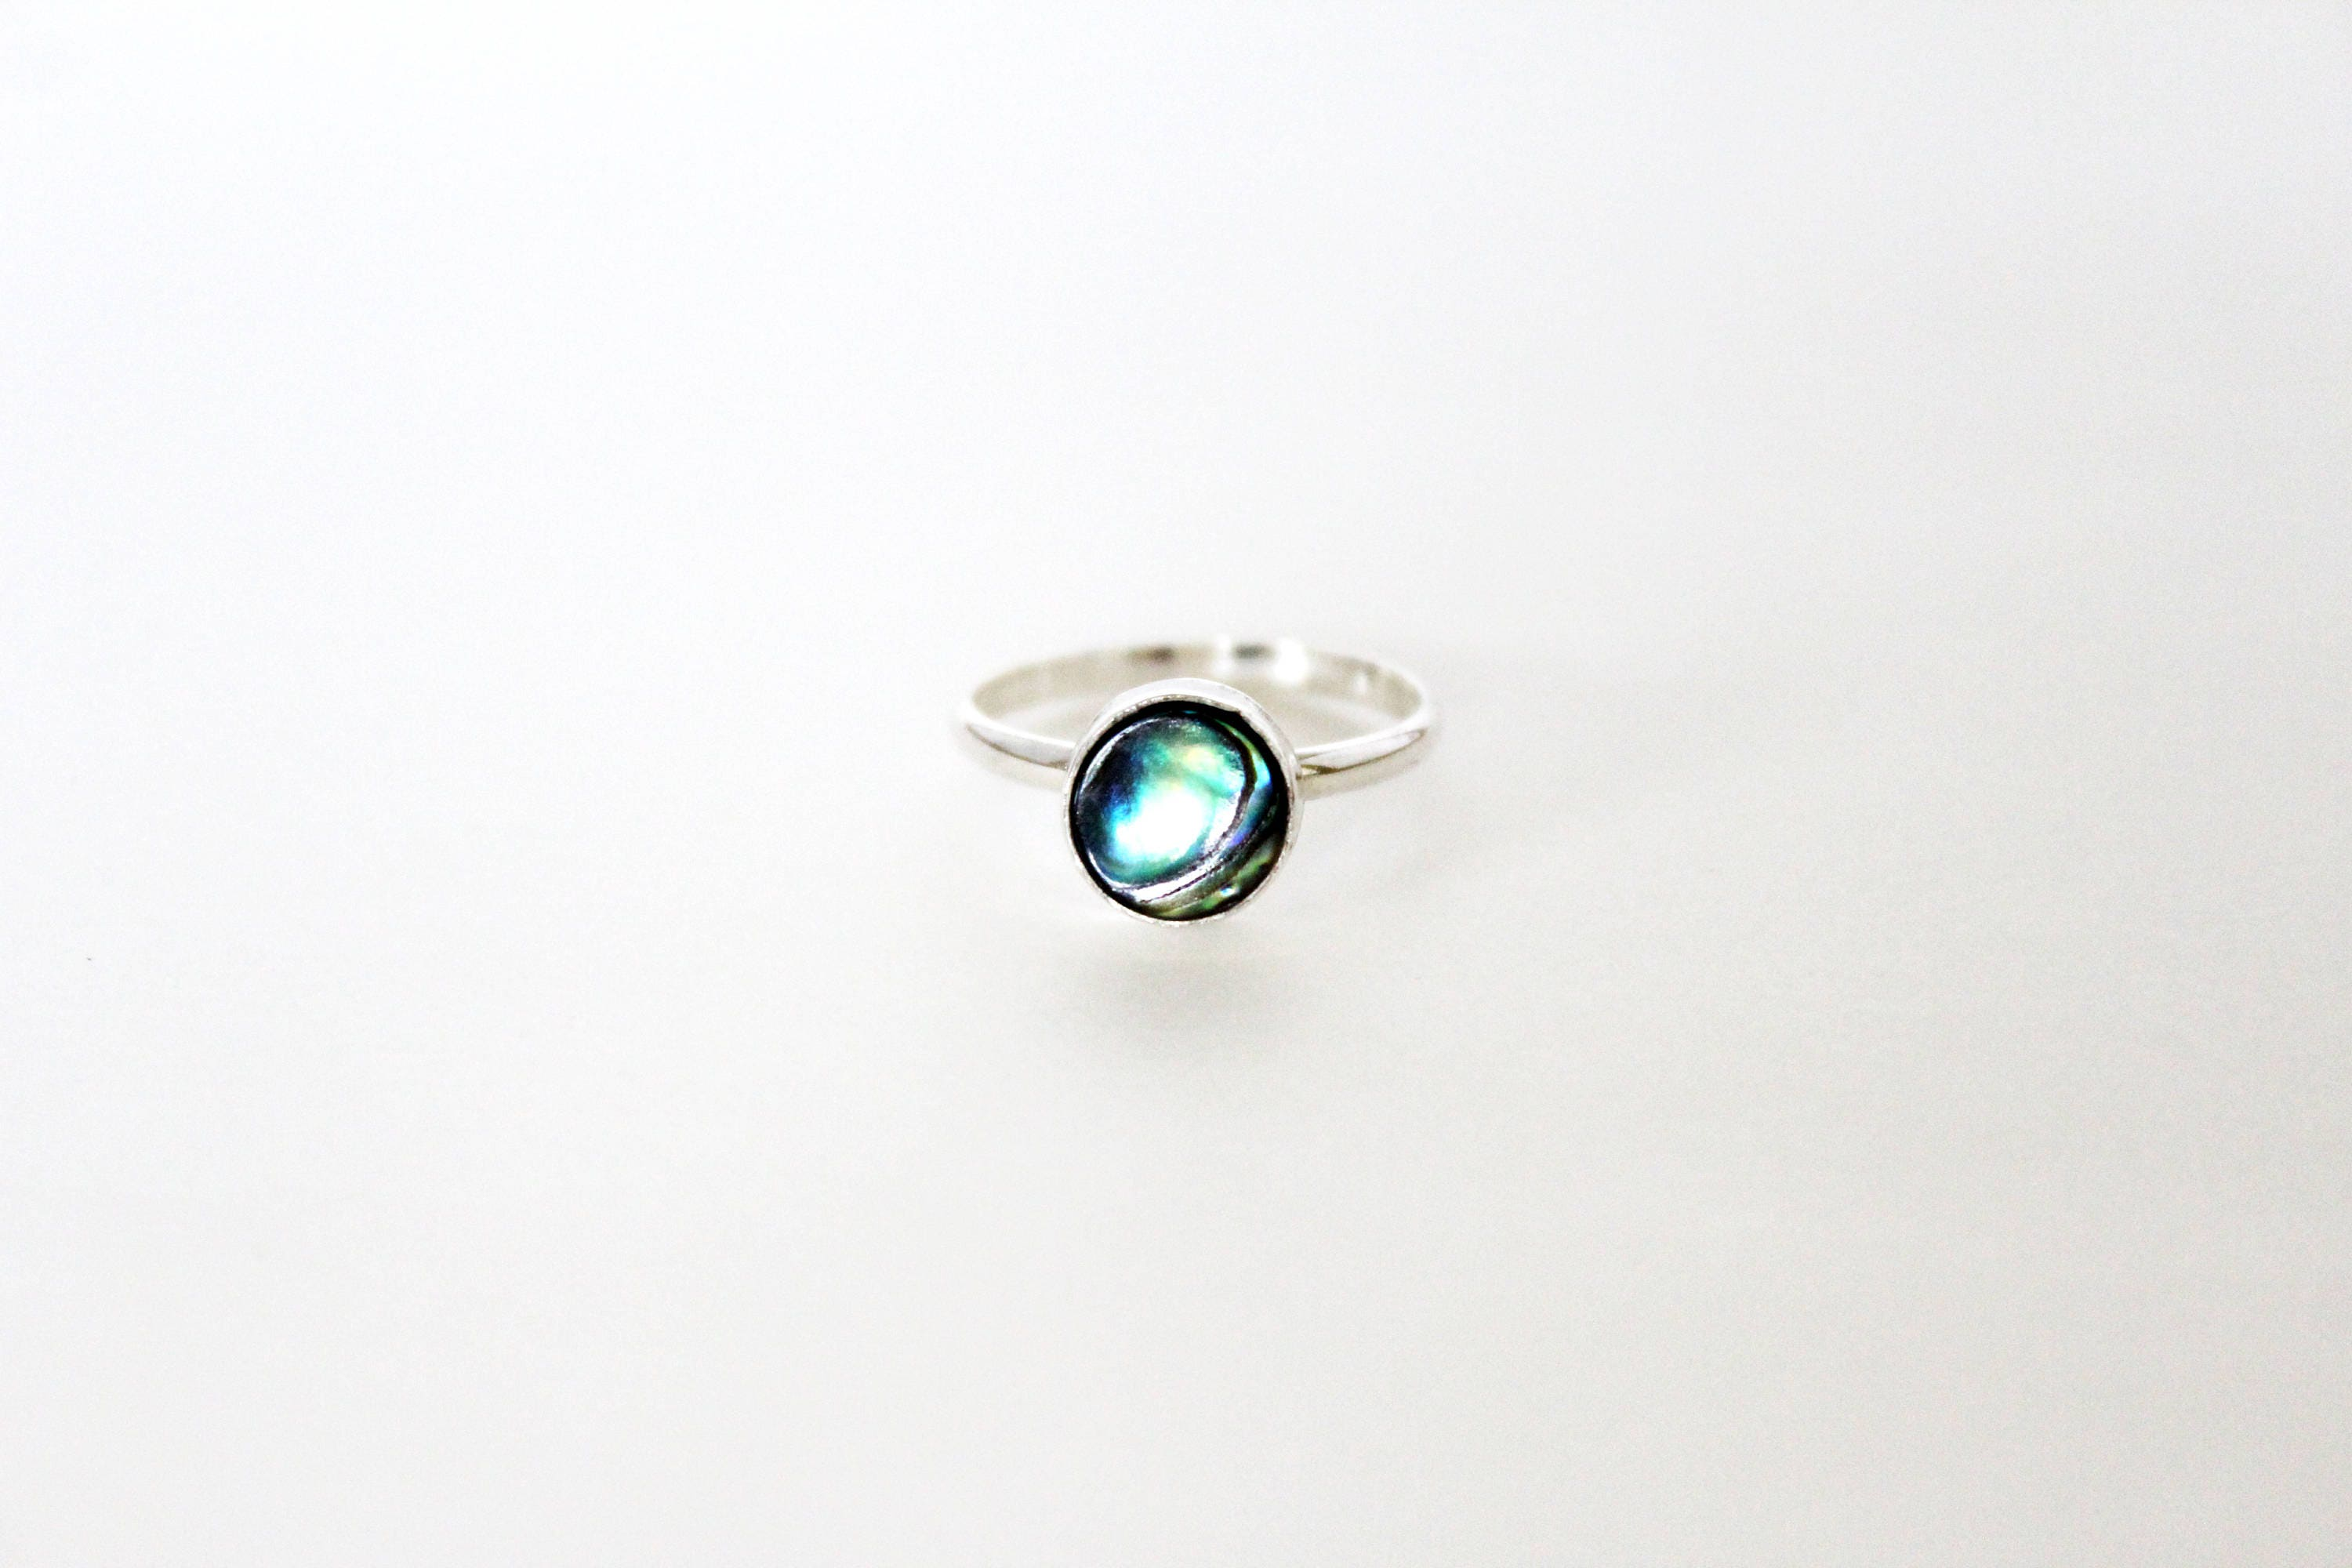 brana silver bark john sterling handmade ring s jewelry products engagement abalone johnsbrana rings band